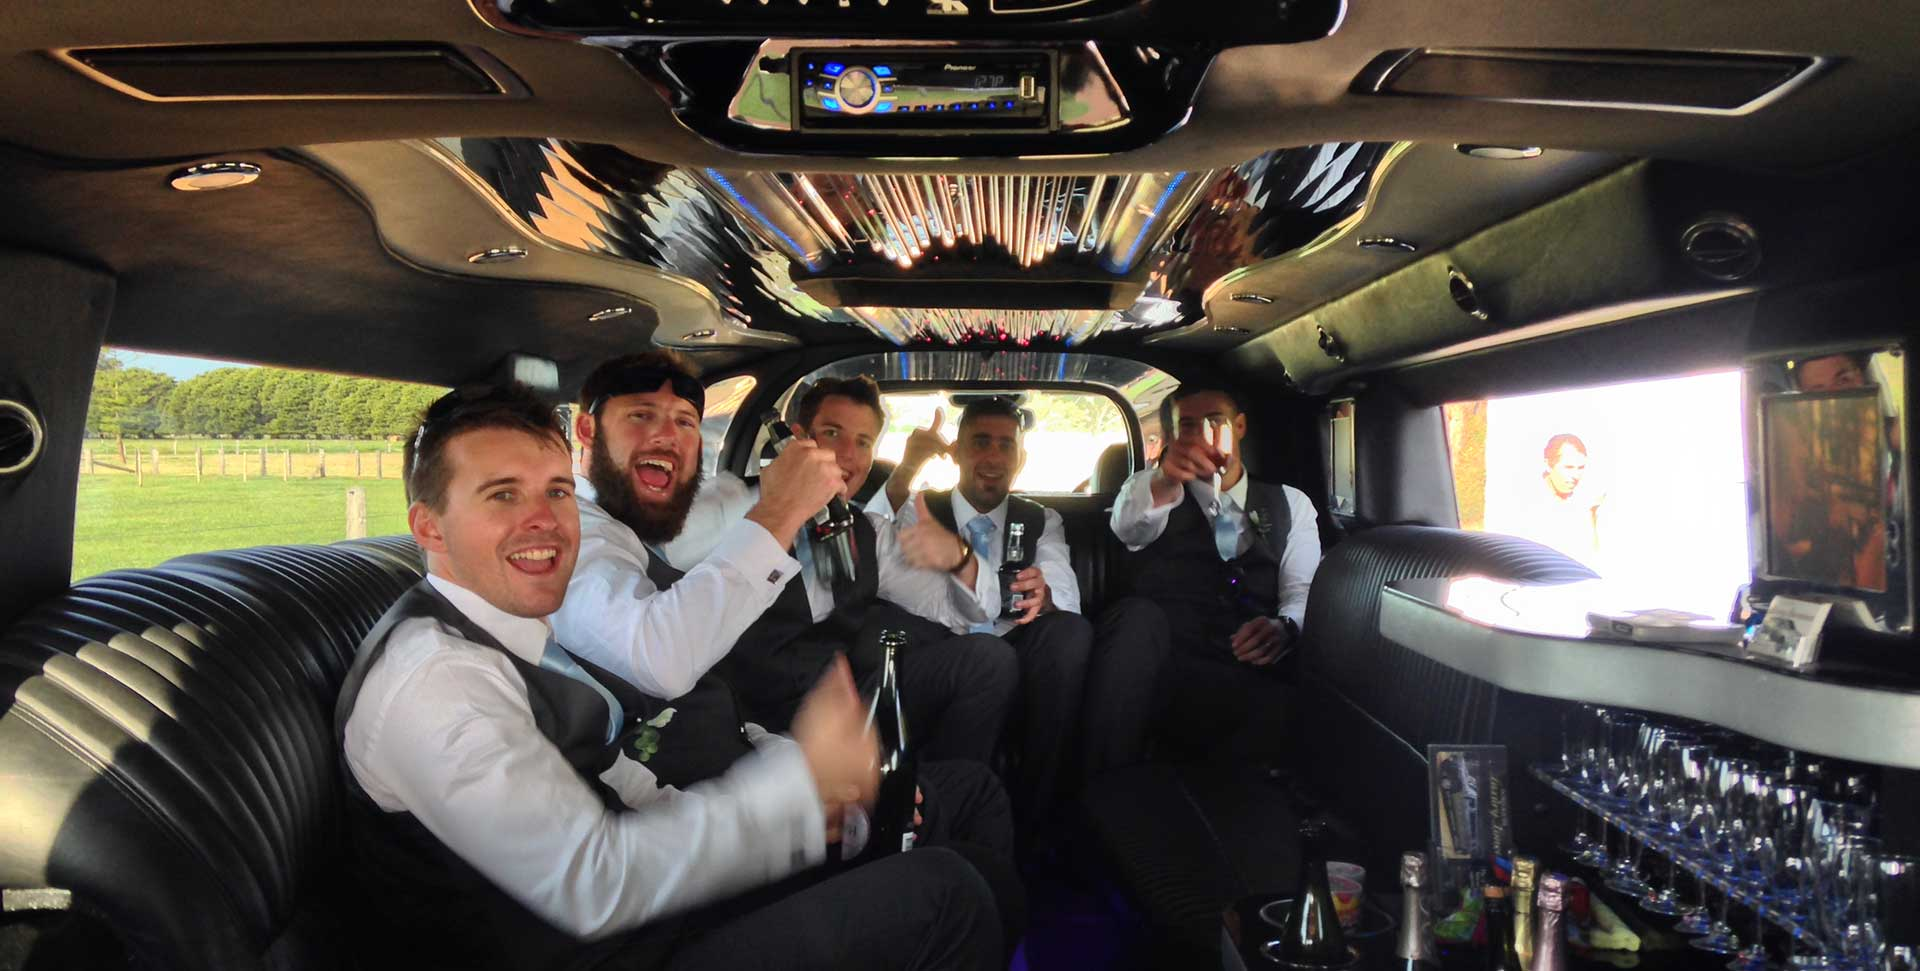 inside the Limousine Wedding Car